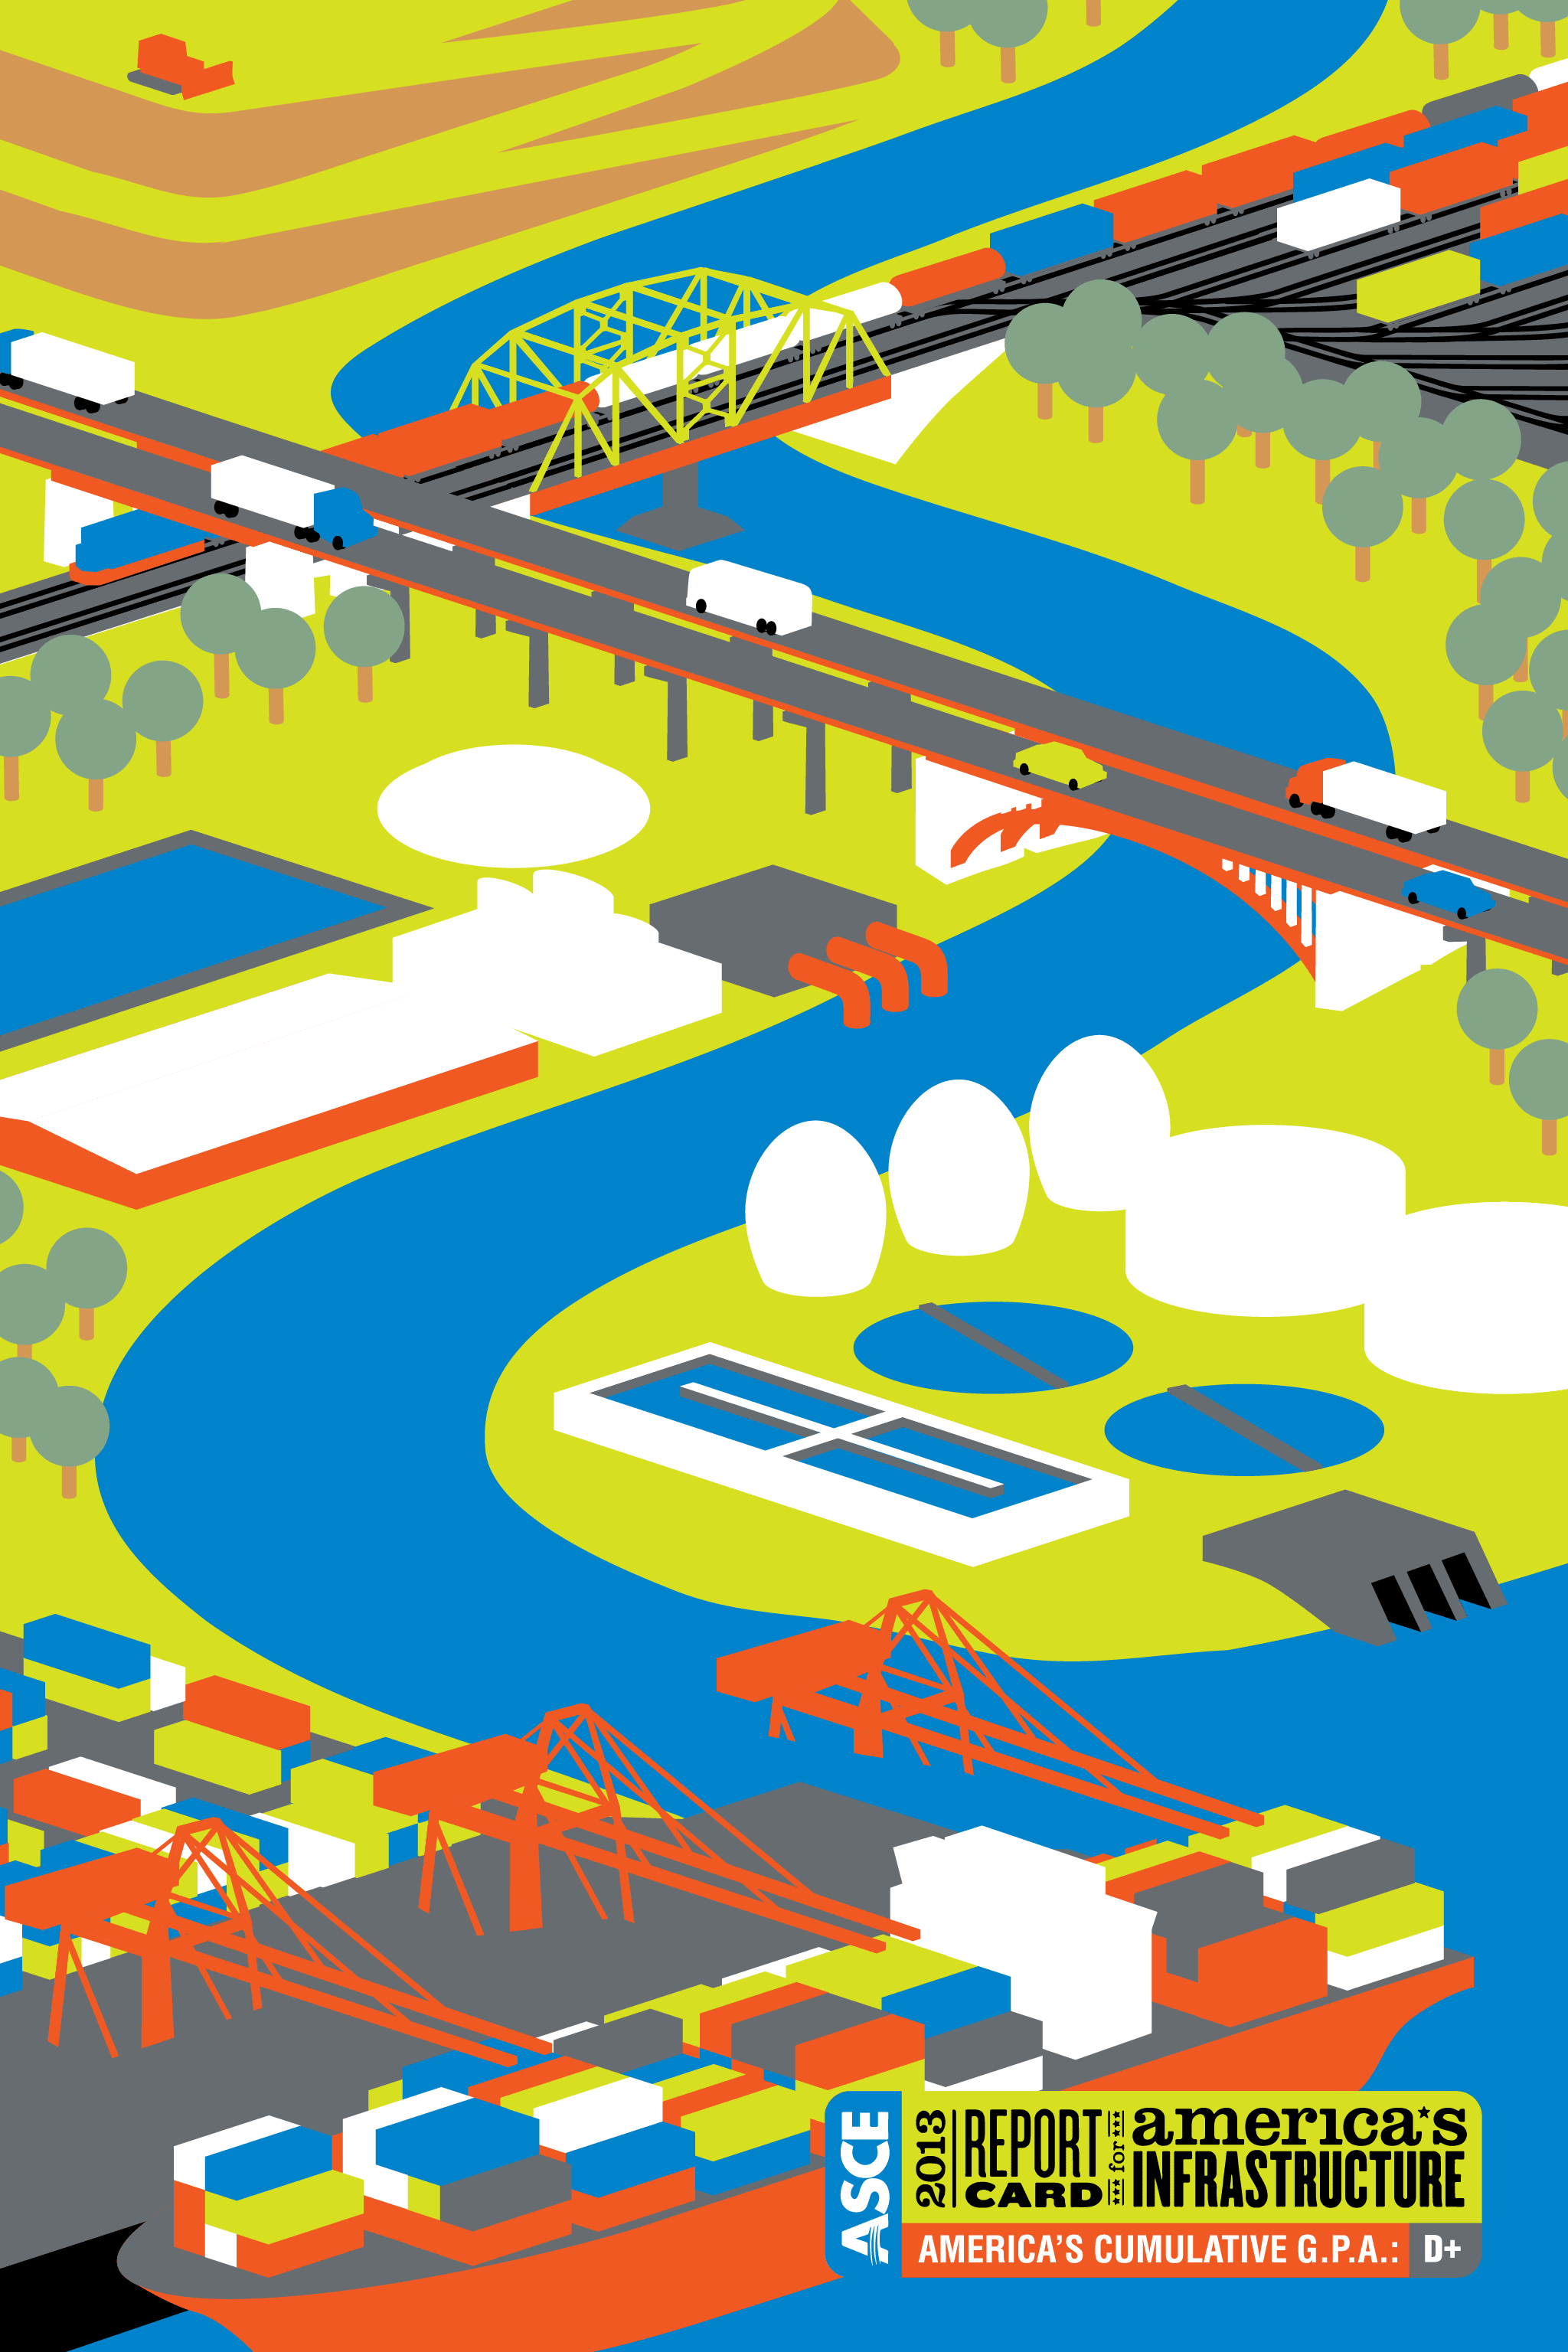 Illustration representing the six areas of American infrastructure that improved between 2009 and 2013. Text: ASCE 2013 Report Card for America's Infrastructure. America's Cumulative GPA: D+